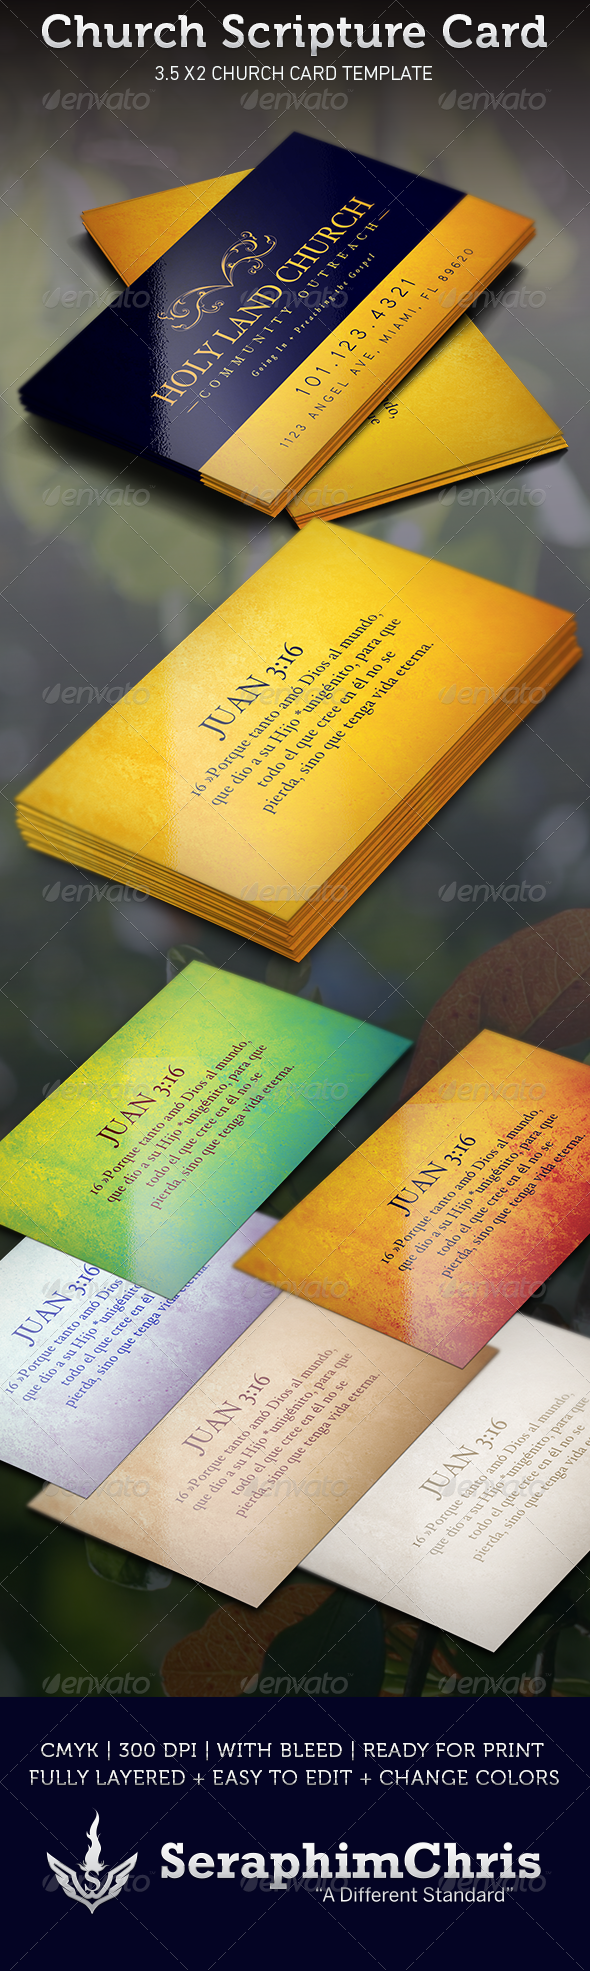 Church Scripture Card Template - Creative Business Cards